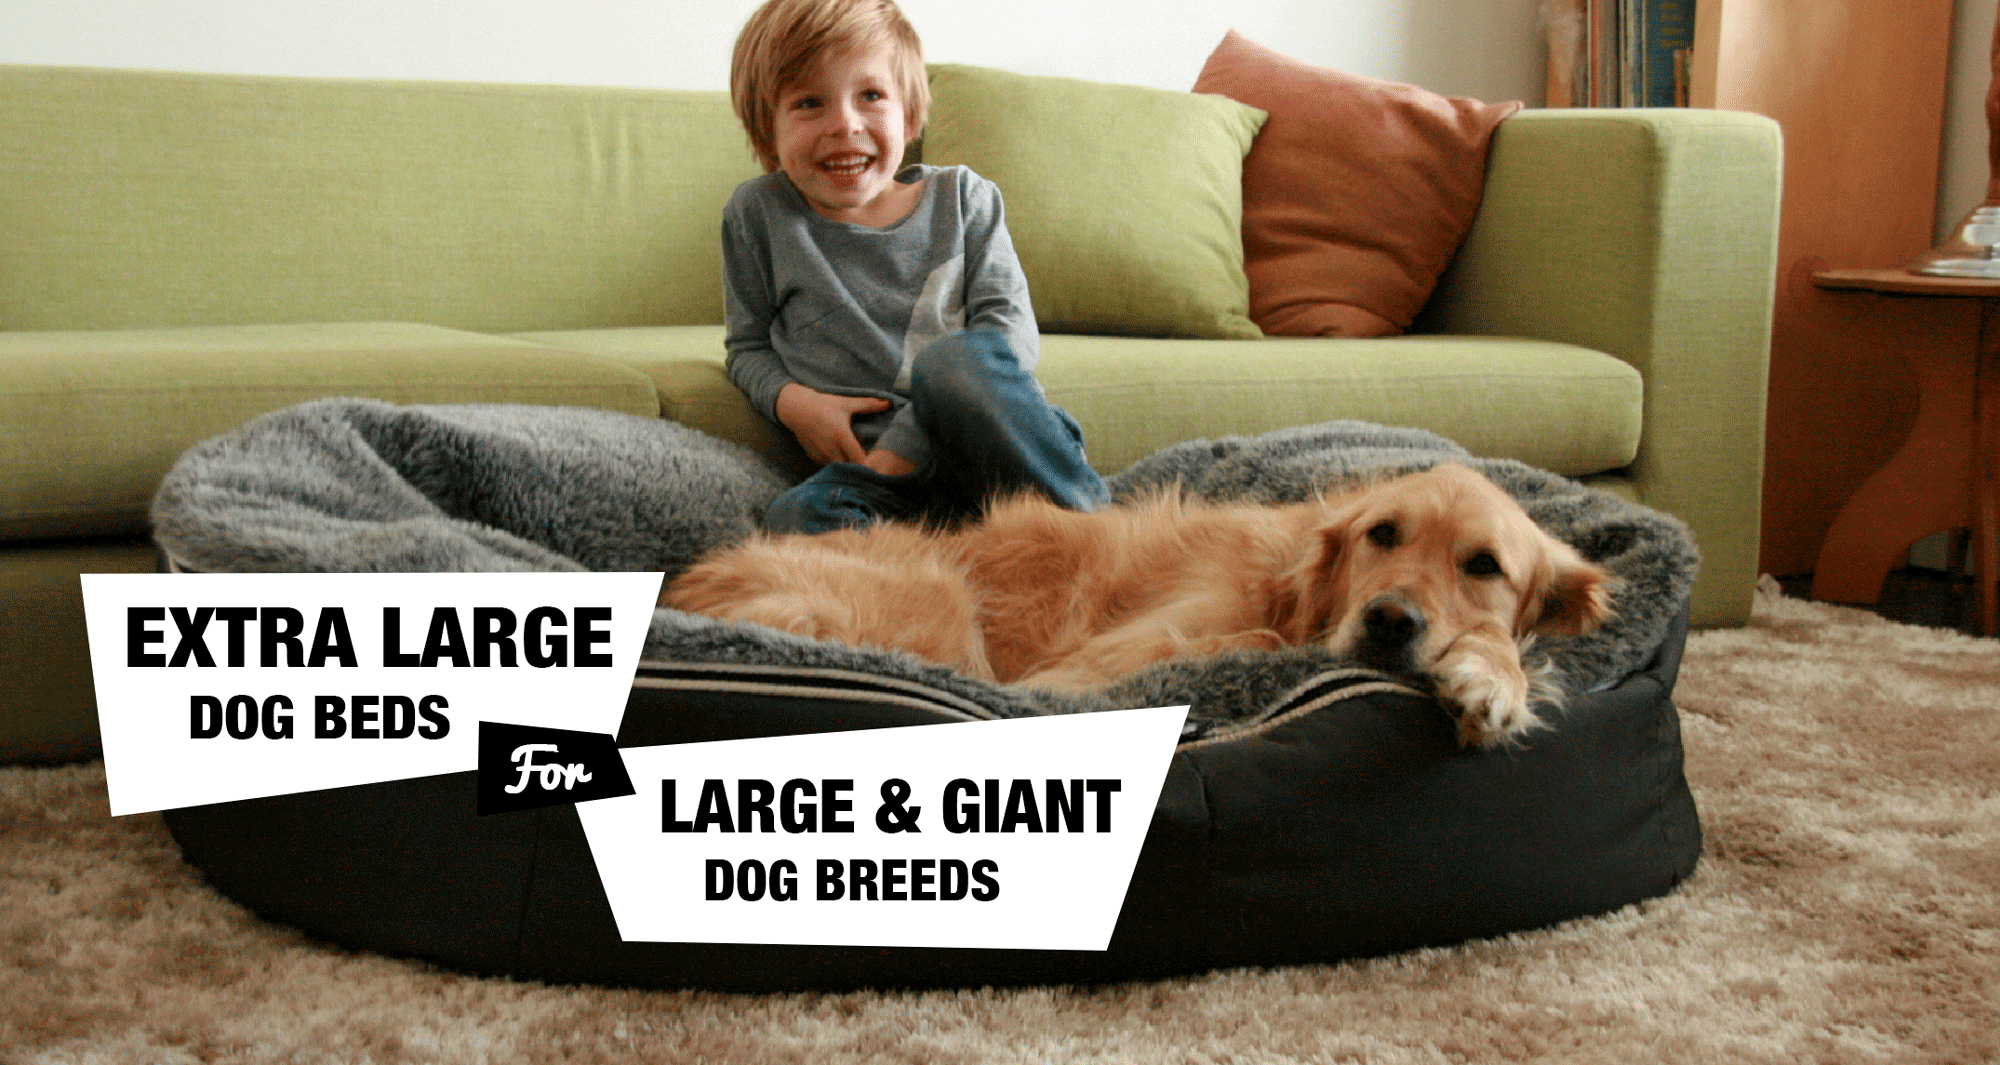 6 Extra Large Dog Beds For Xlxxl Dog Breeds Reviewed